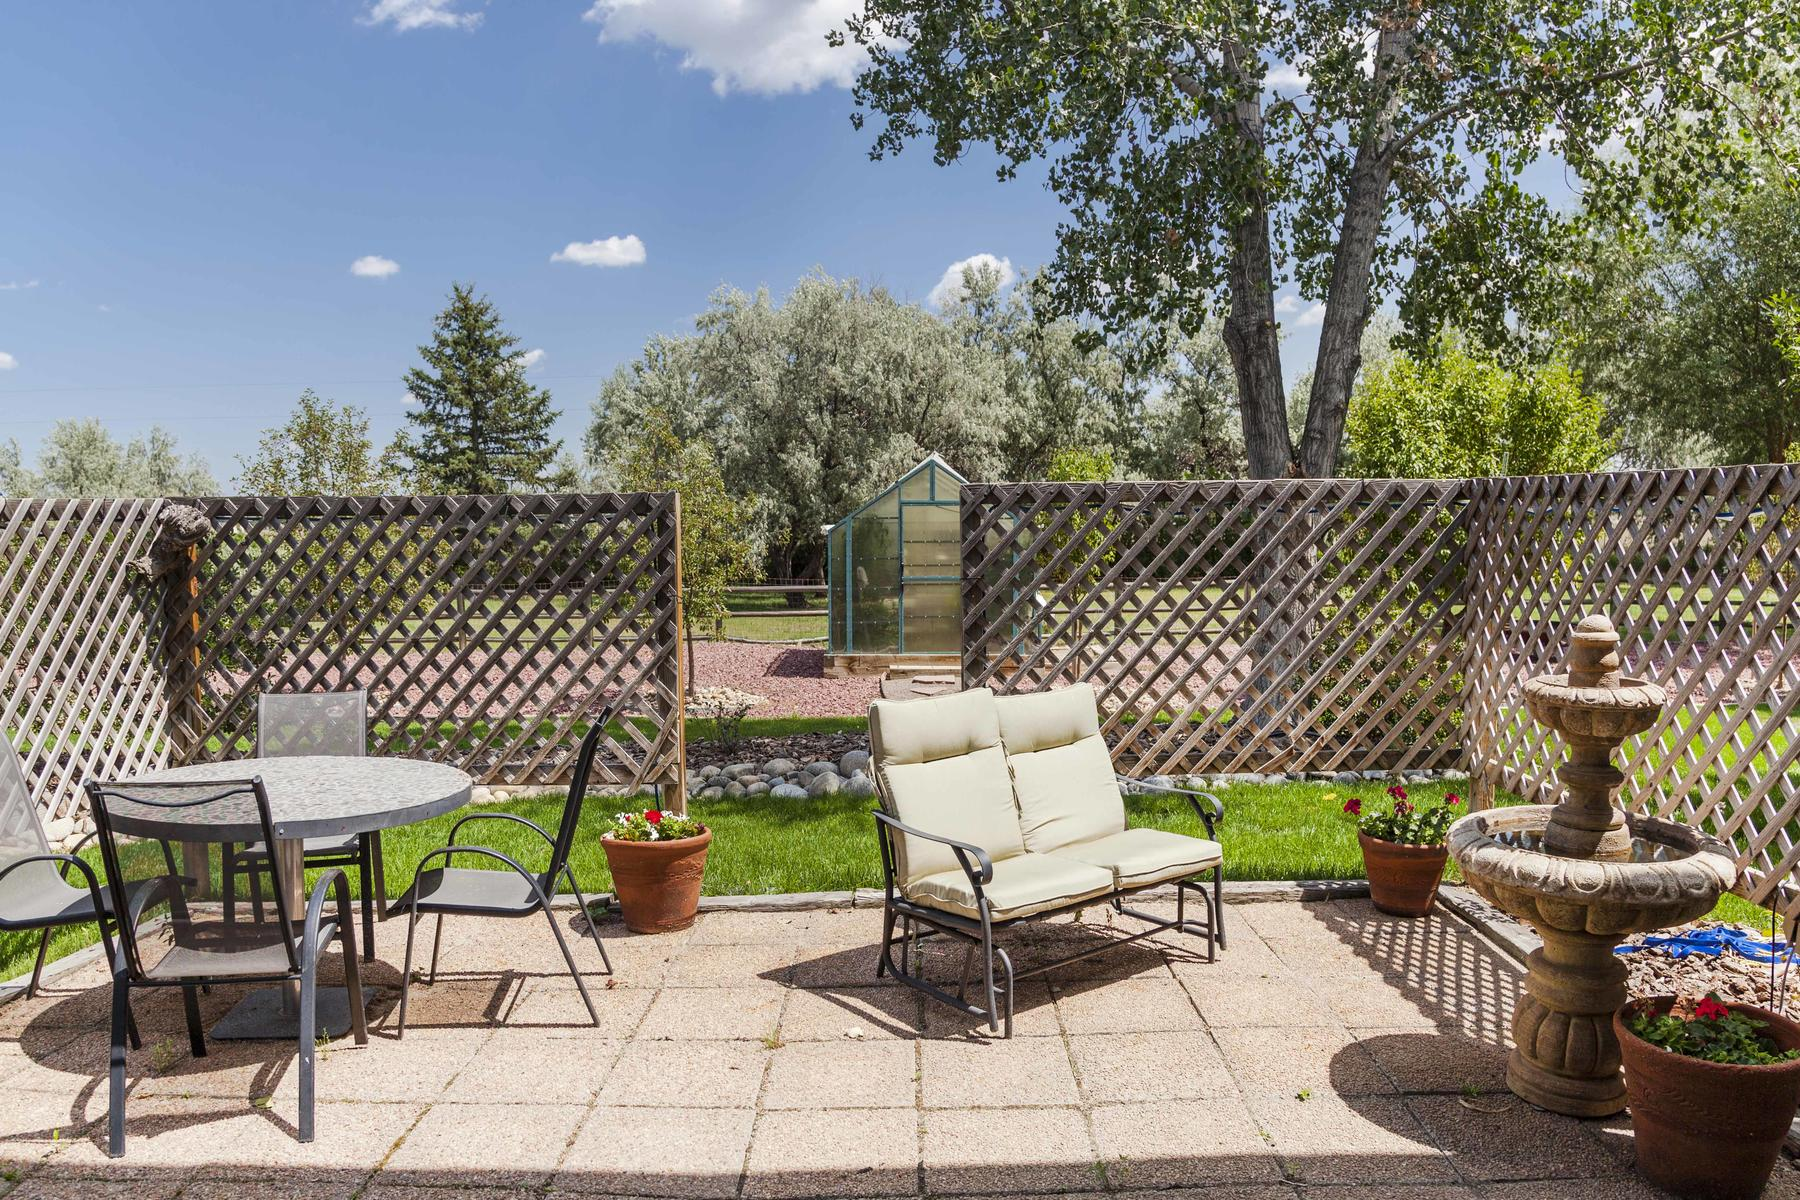 Additional photo for property listing at A private oasis on 2.24 acres zoned horse property in Unincorporated Adams Count 14270 Meadowlark Ln Brighton, Colorado 80601 United States